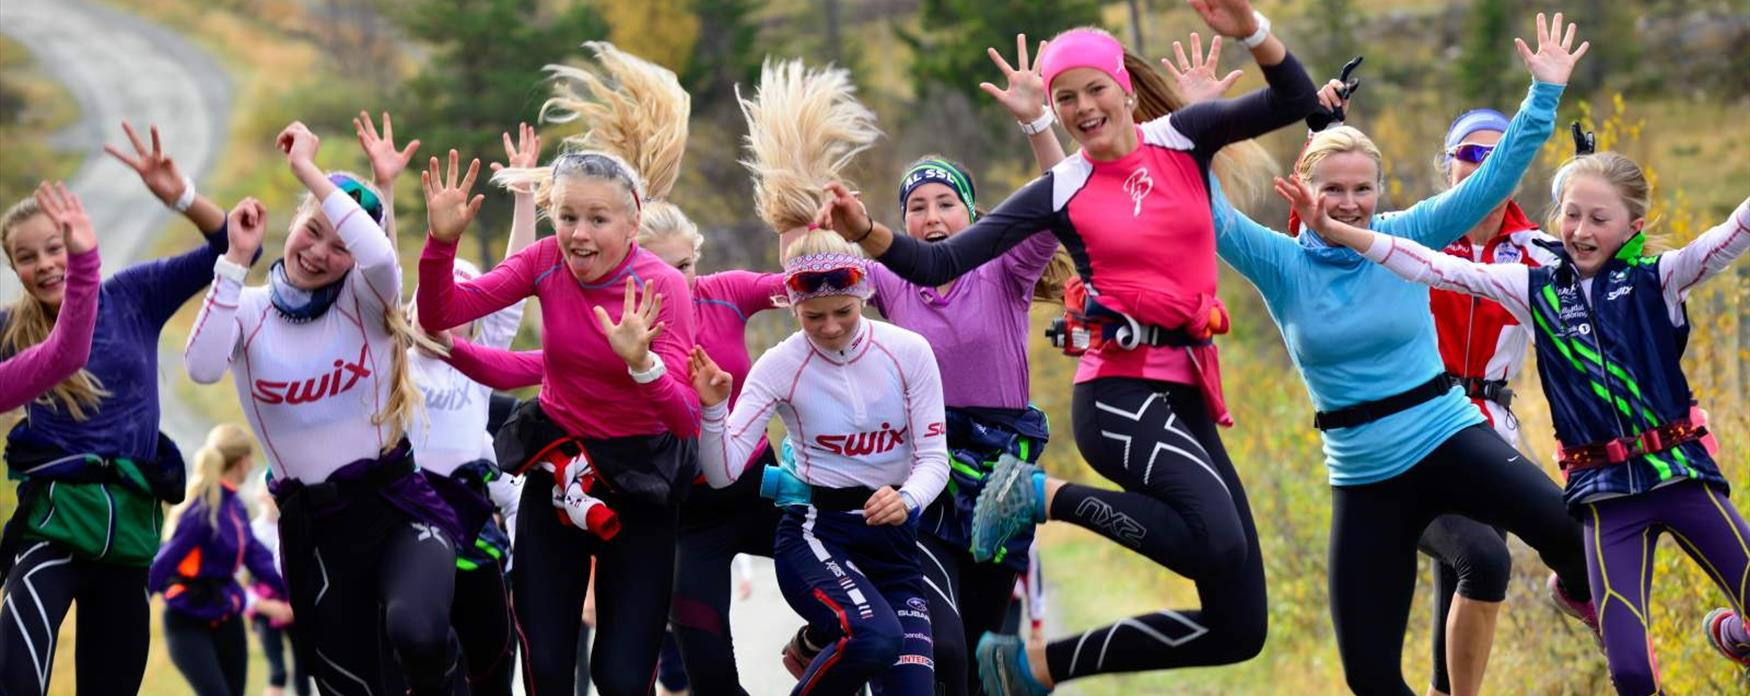 Sports and activities in hallingdal